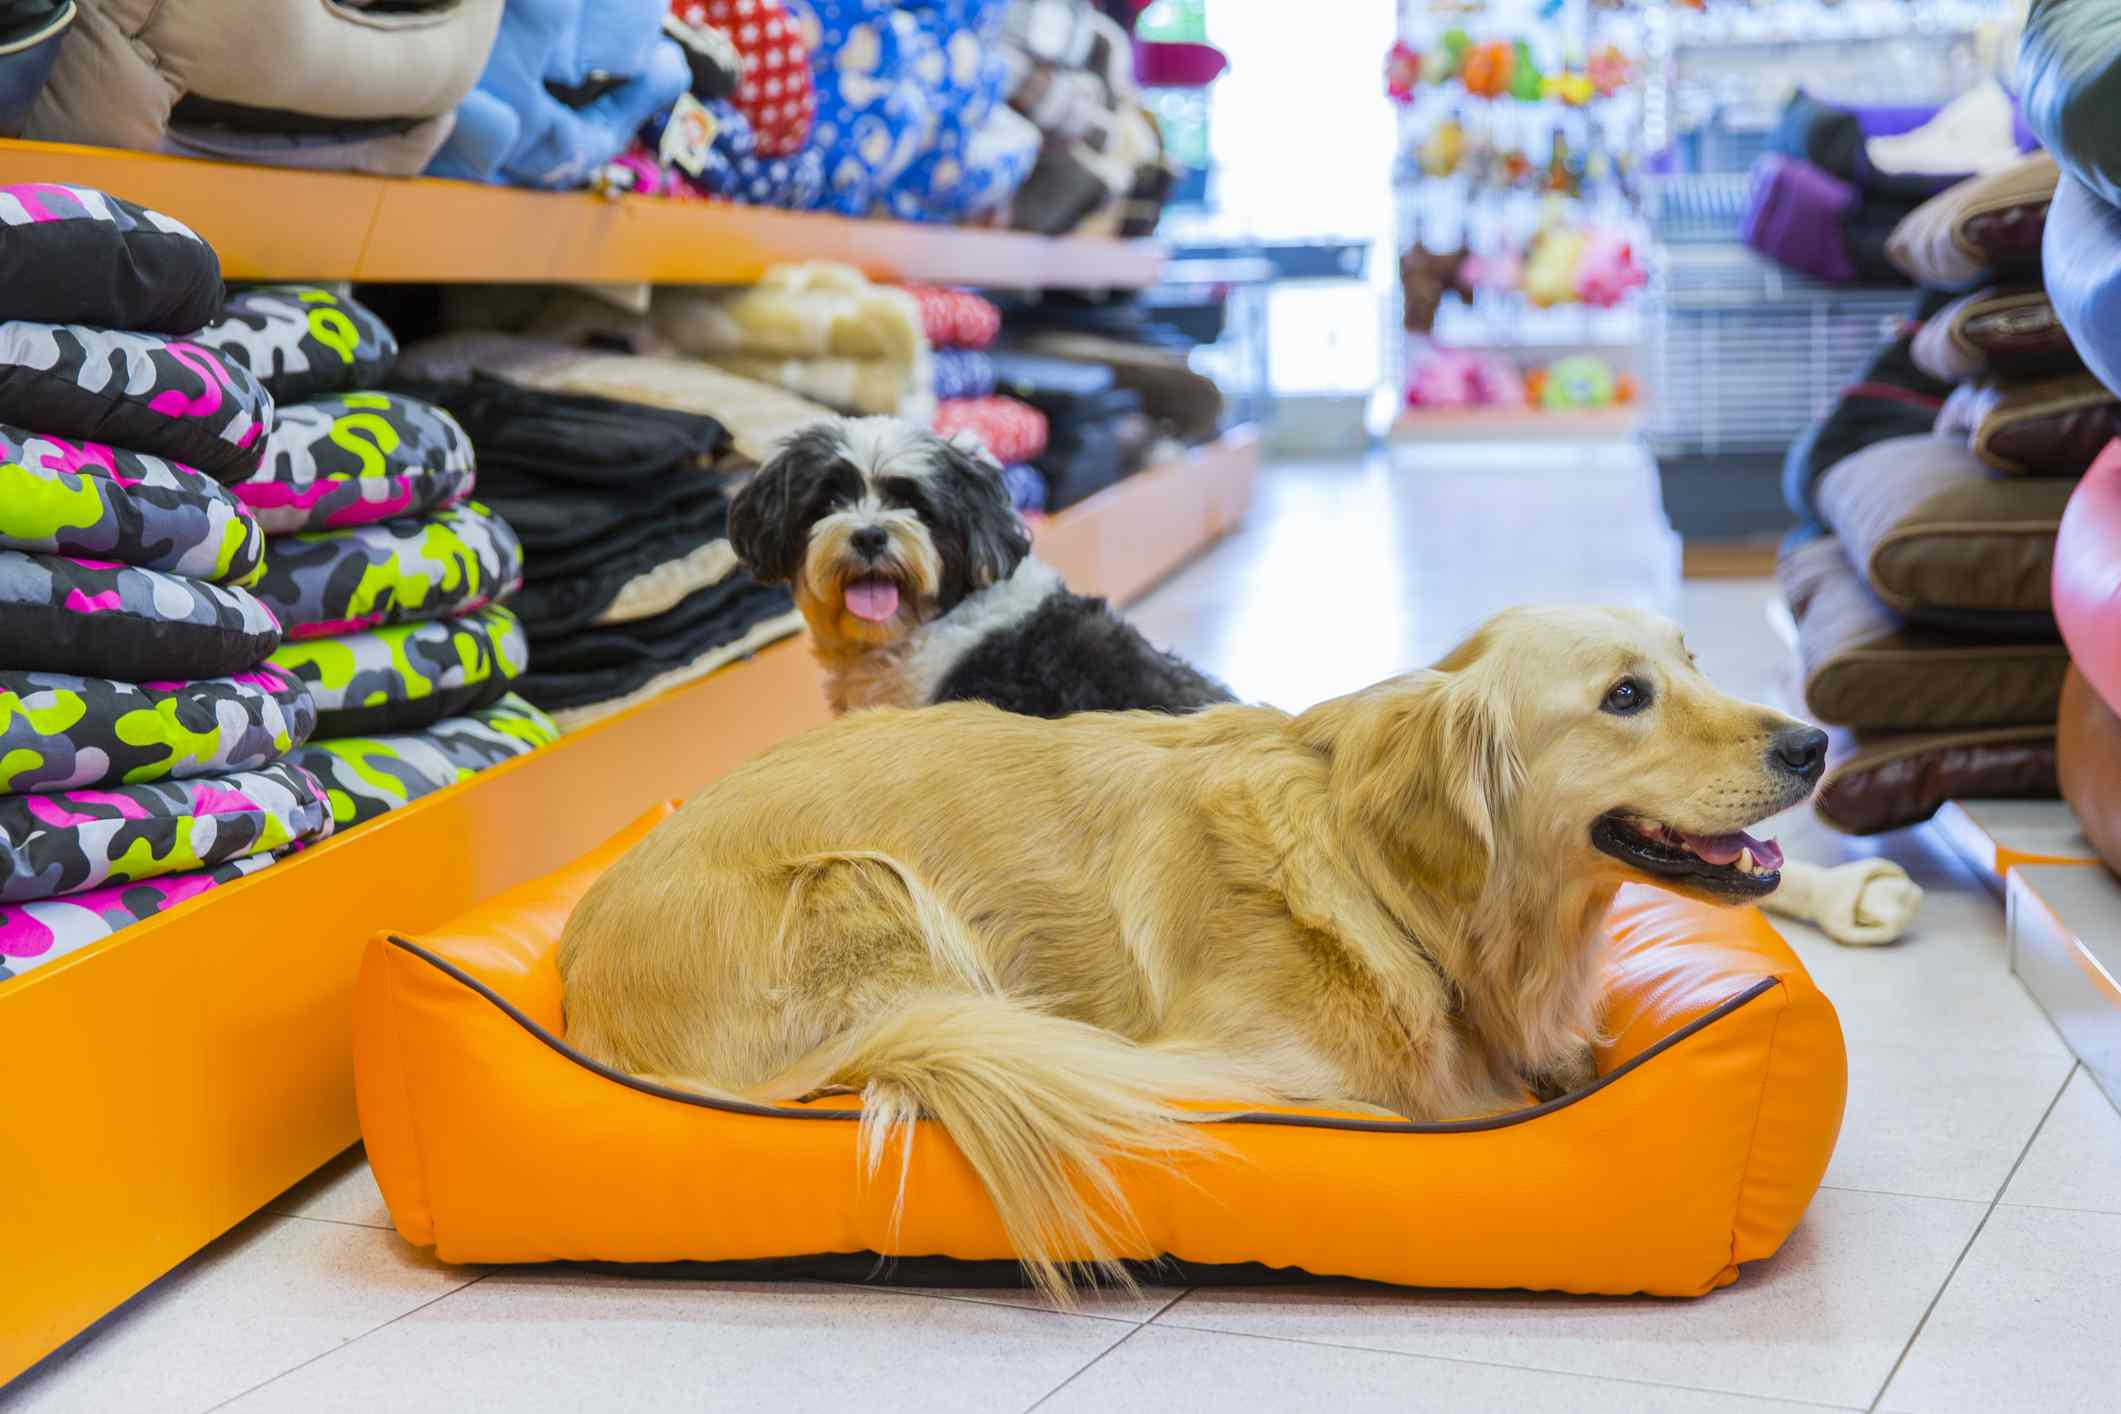 Dogs in a pet store on a dog bed